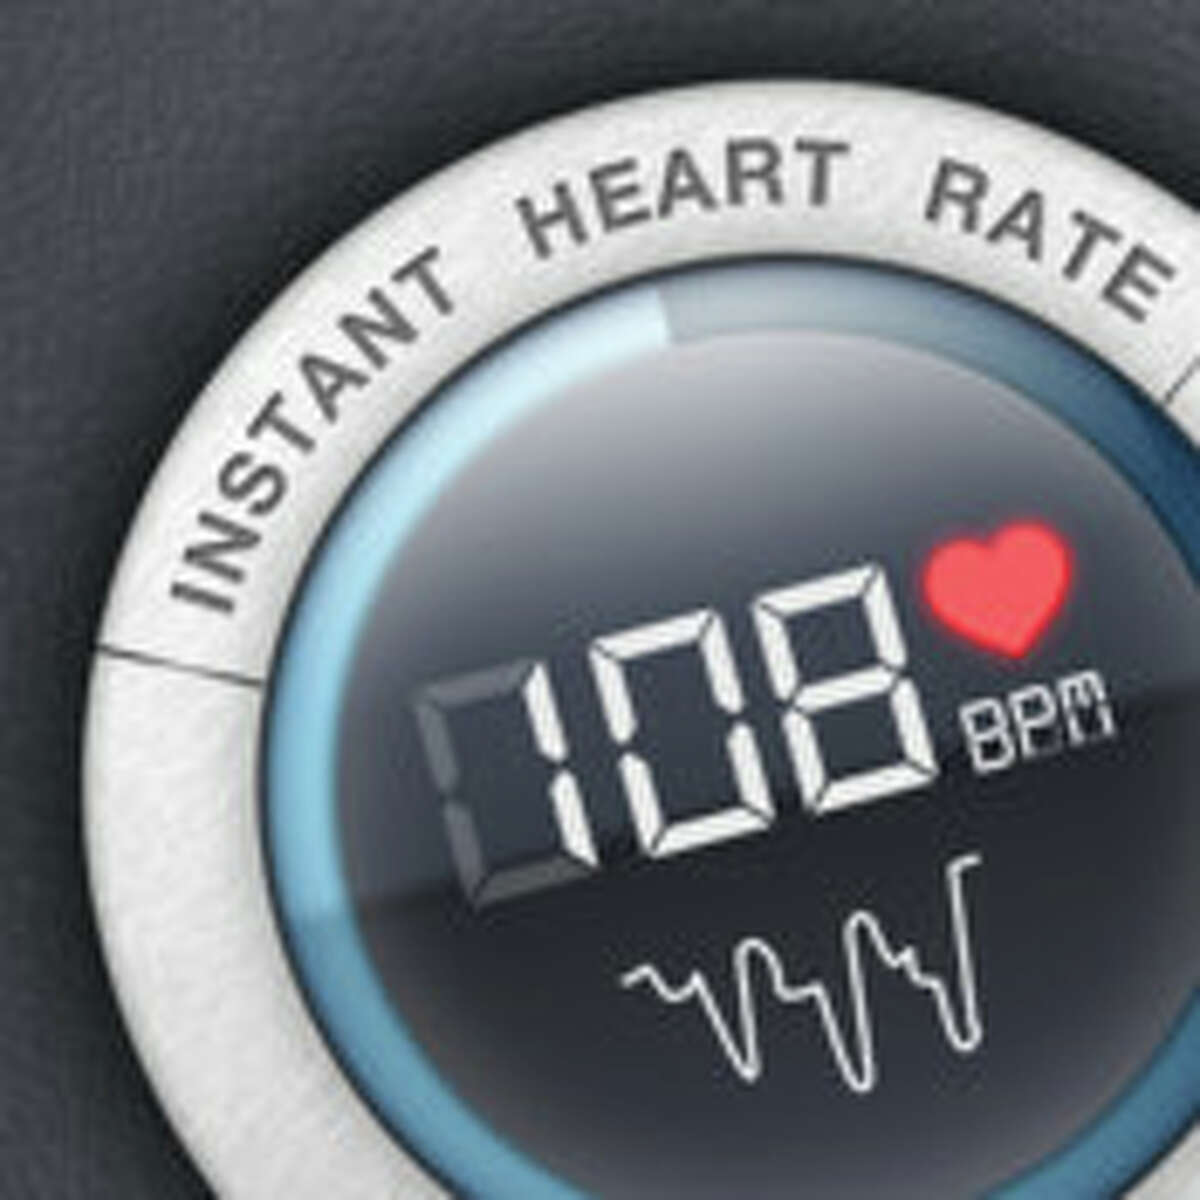 Instant Heart Rate app for iOS and Android